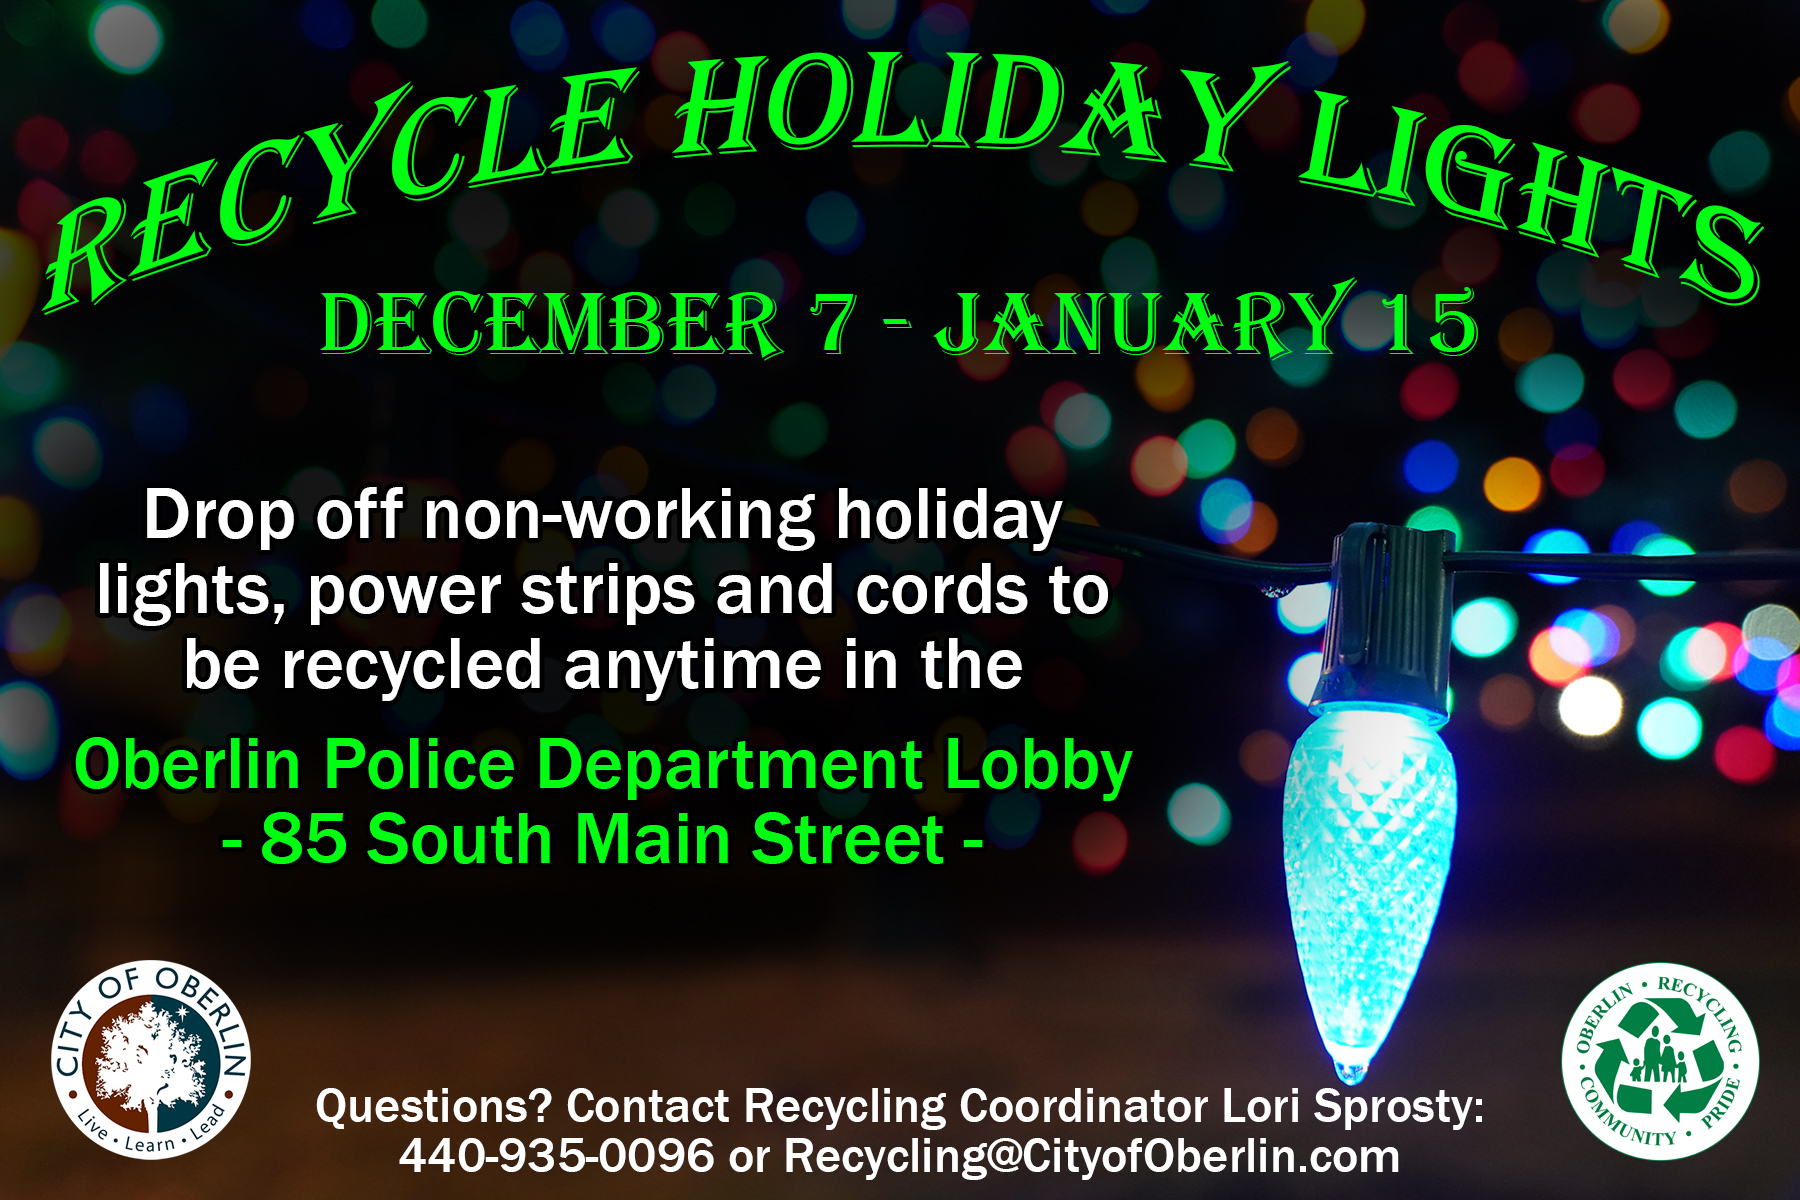 https://www.cityofoberlin.com/wp-content/uploads/2021/01/2020Holiday-Light-Recycling-Cable-Slide-002.jpg